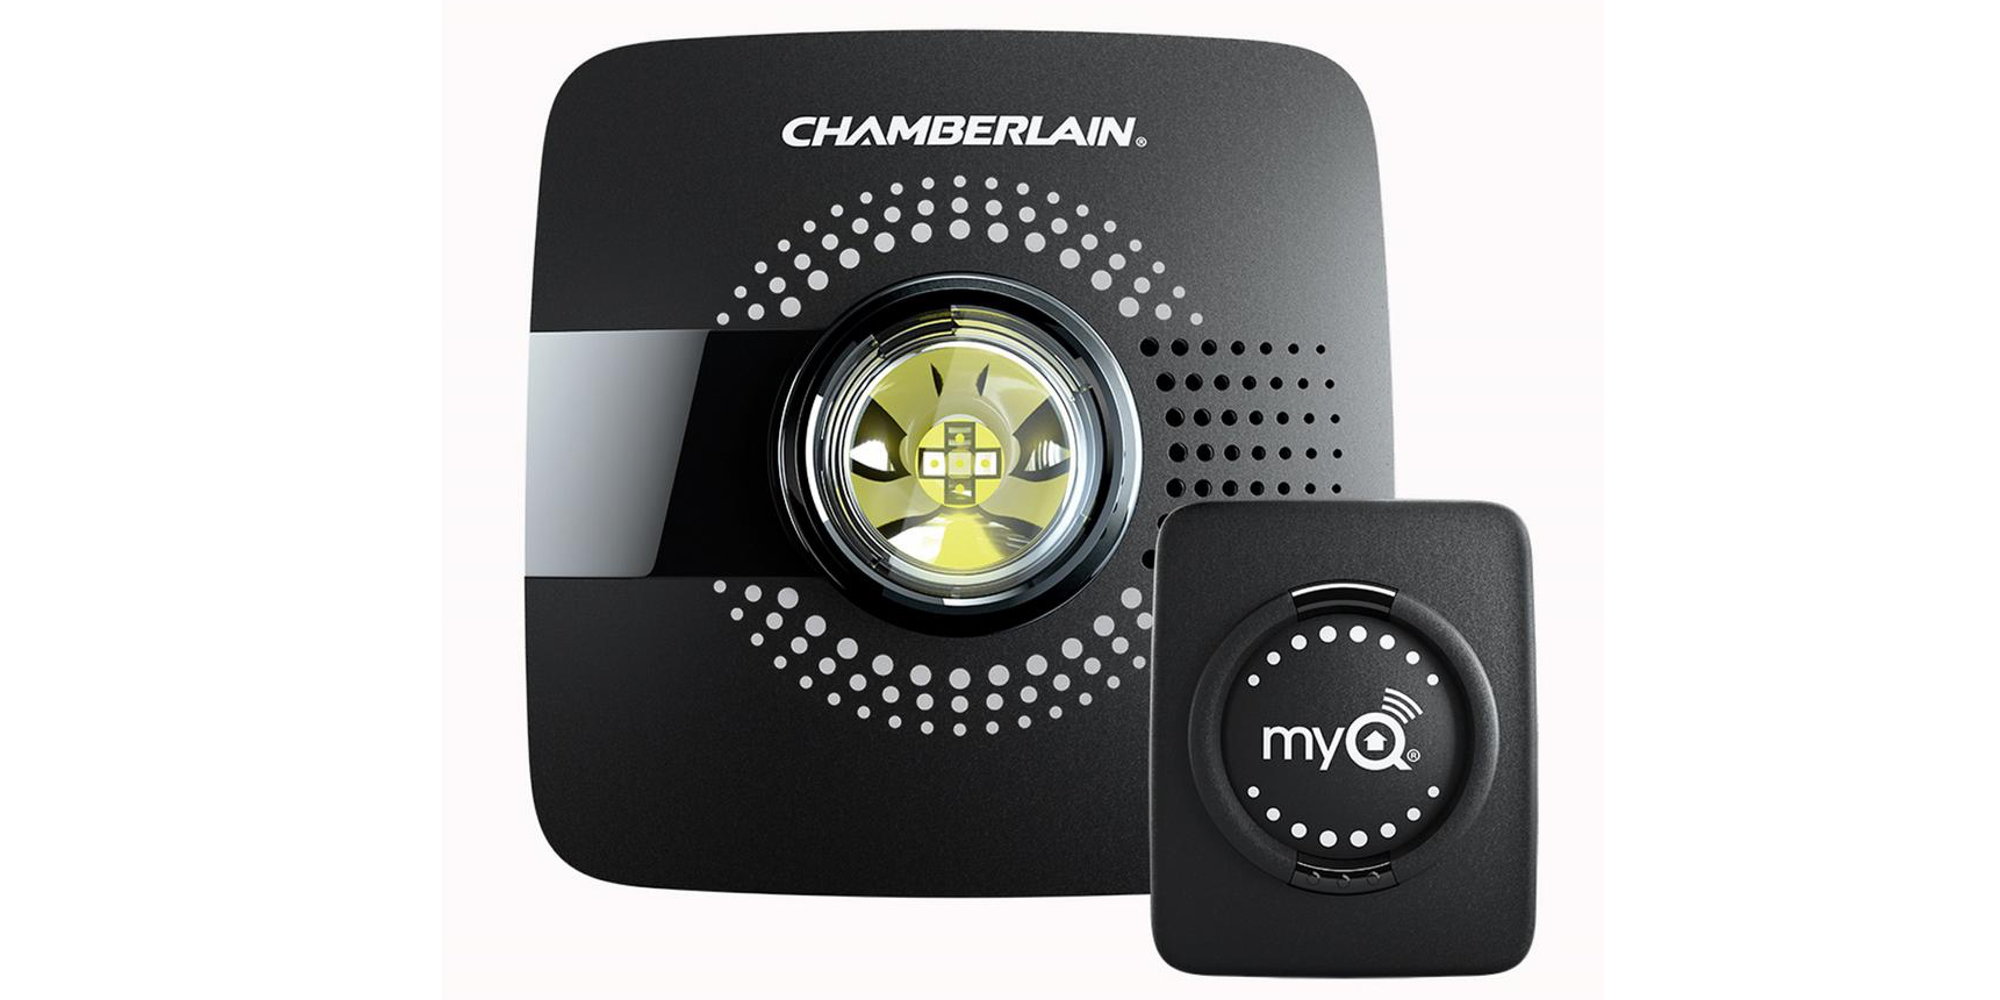 Chamberlain's MyQ Hub adds smartphone control to any garage door at $60 shipped (25% off)